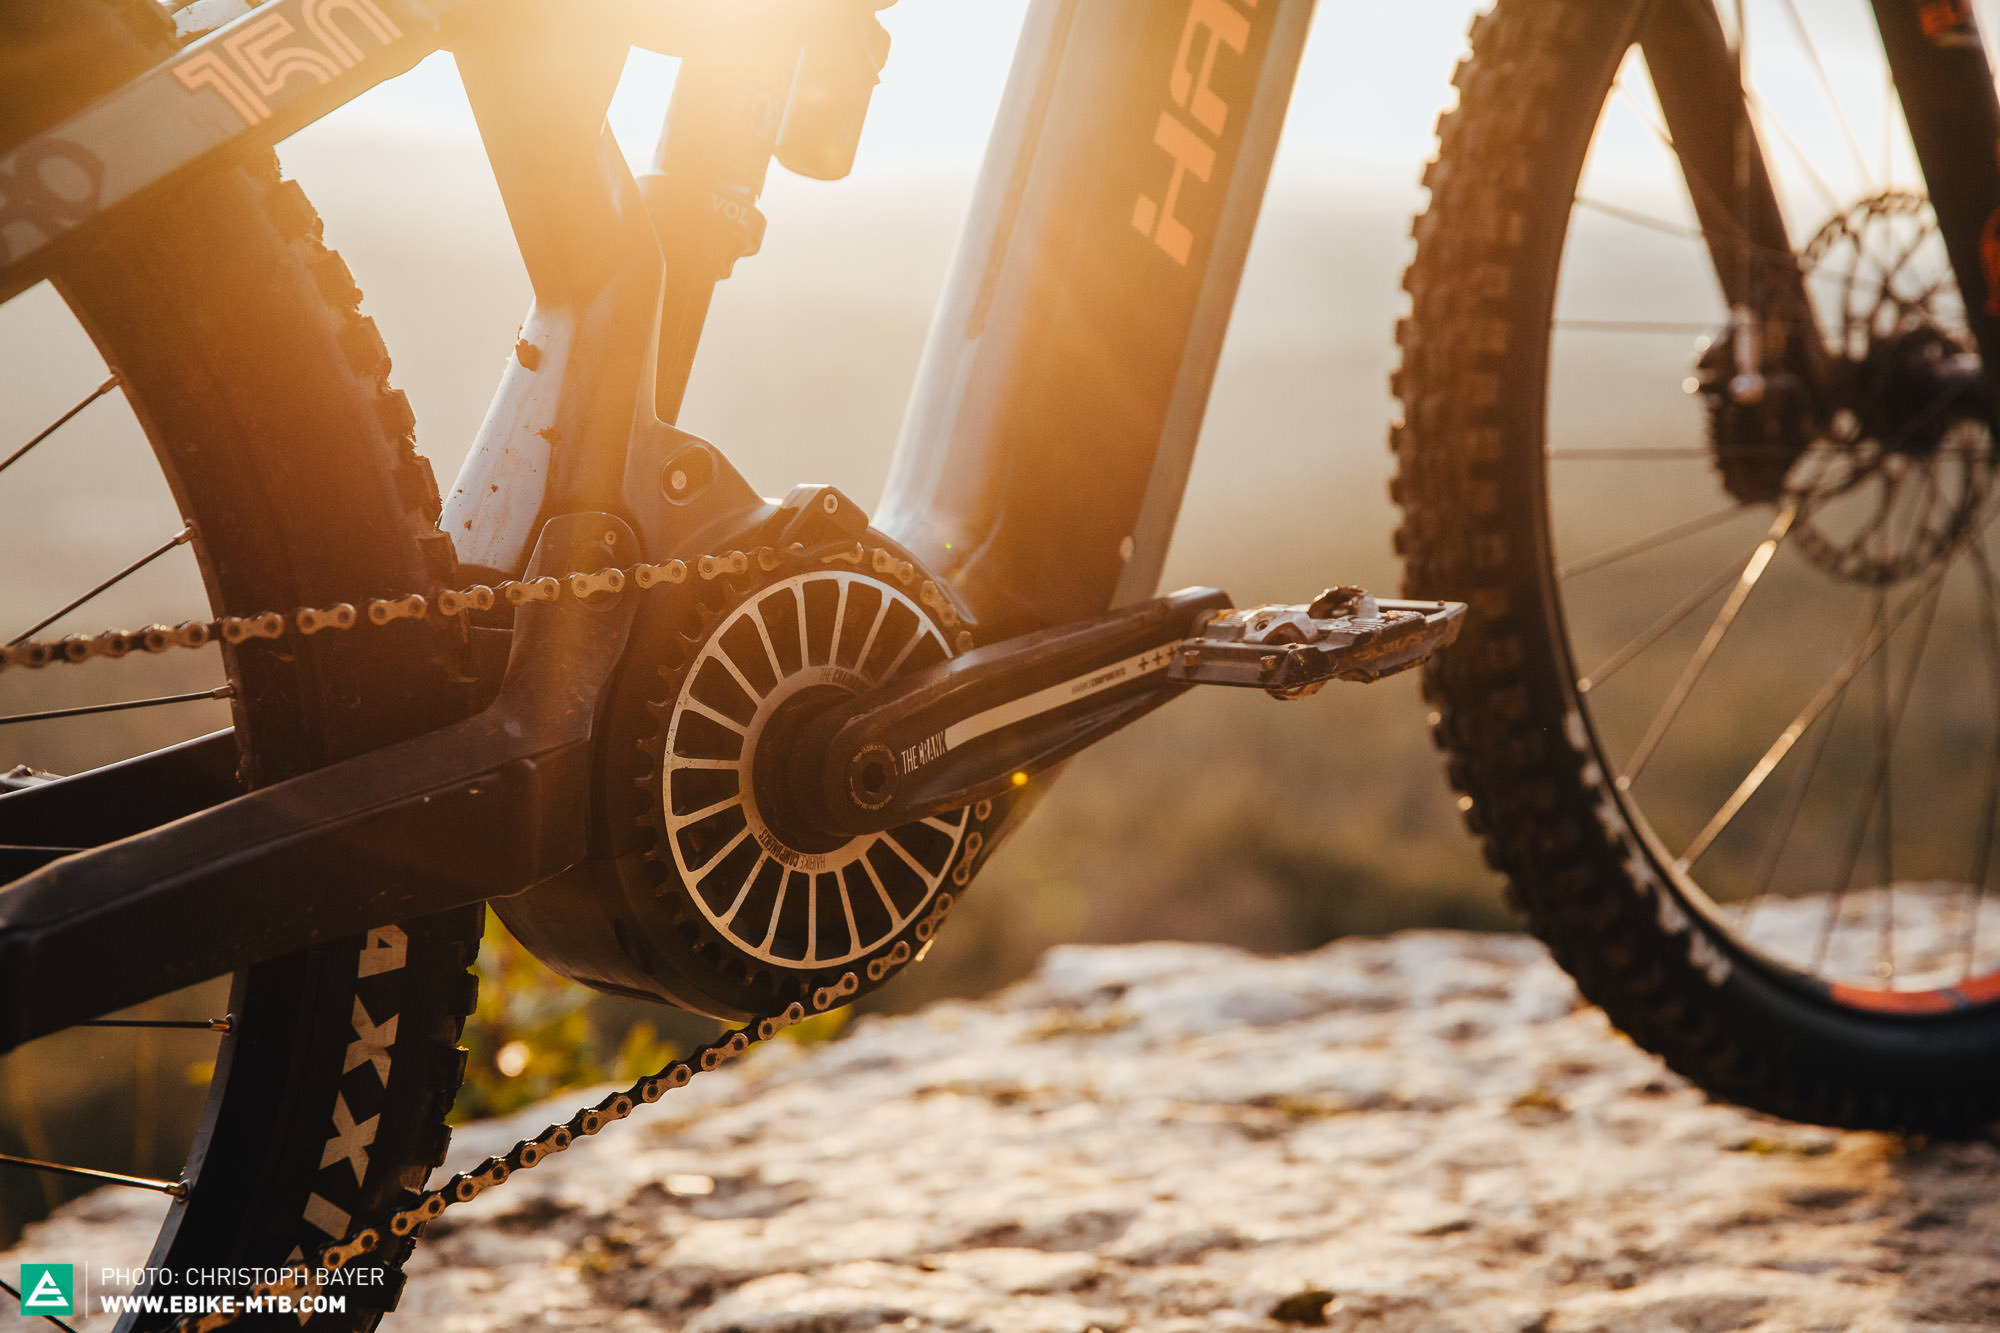 Development of the Haibike Flyon – About Design, Power and